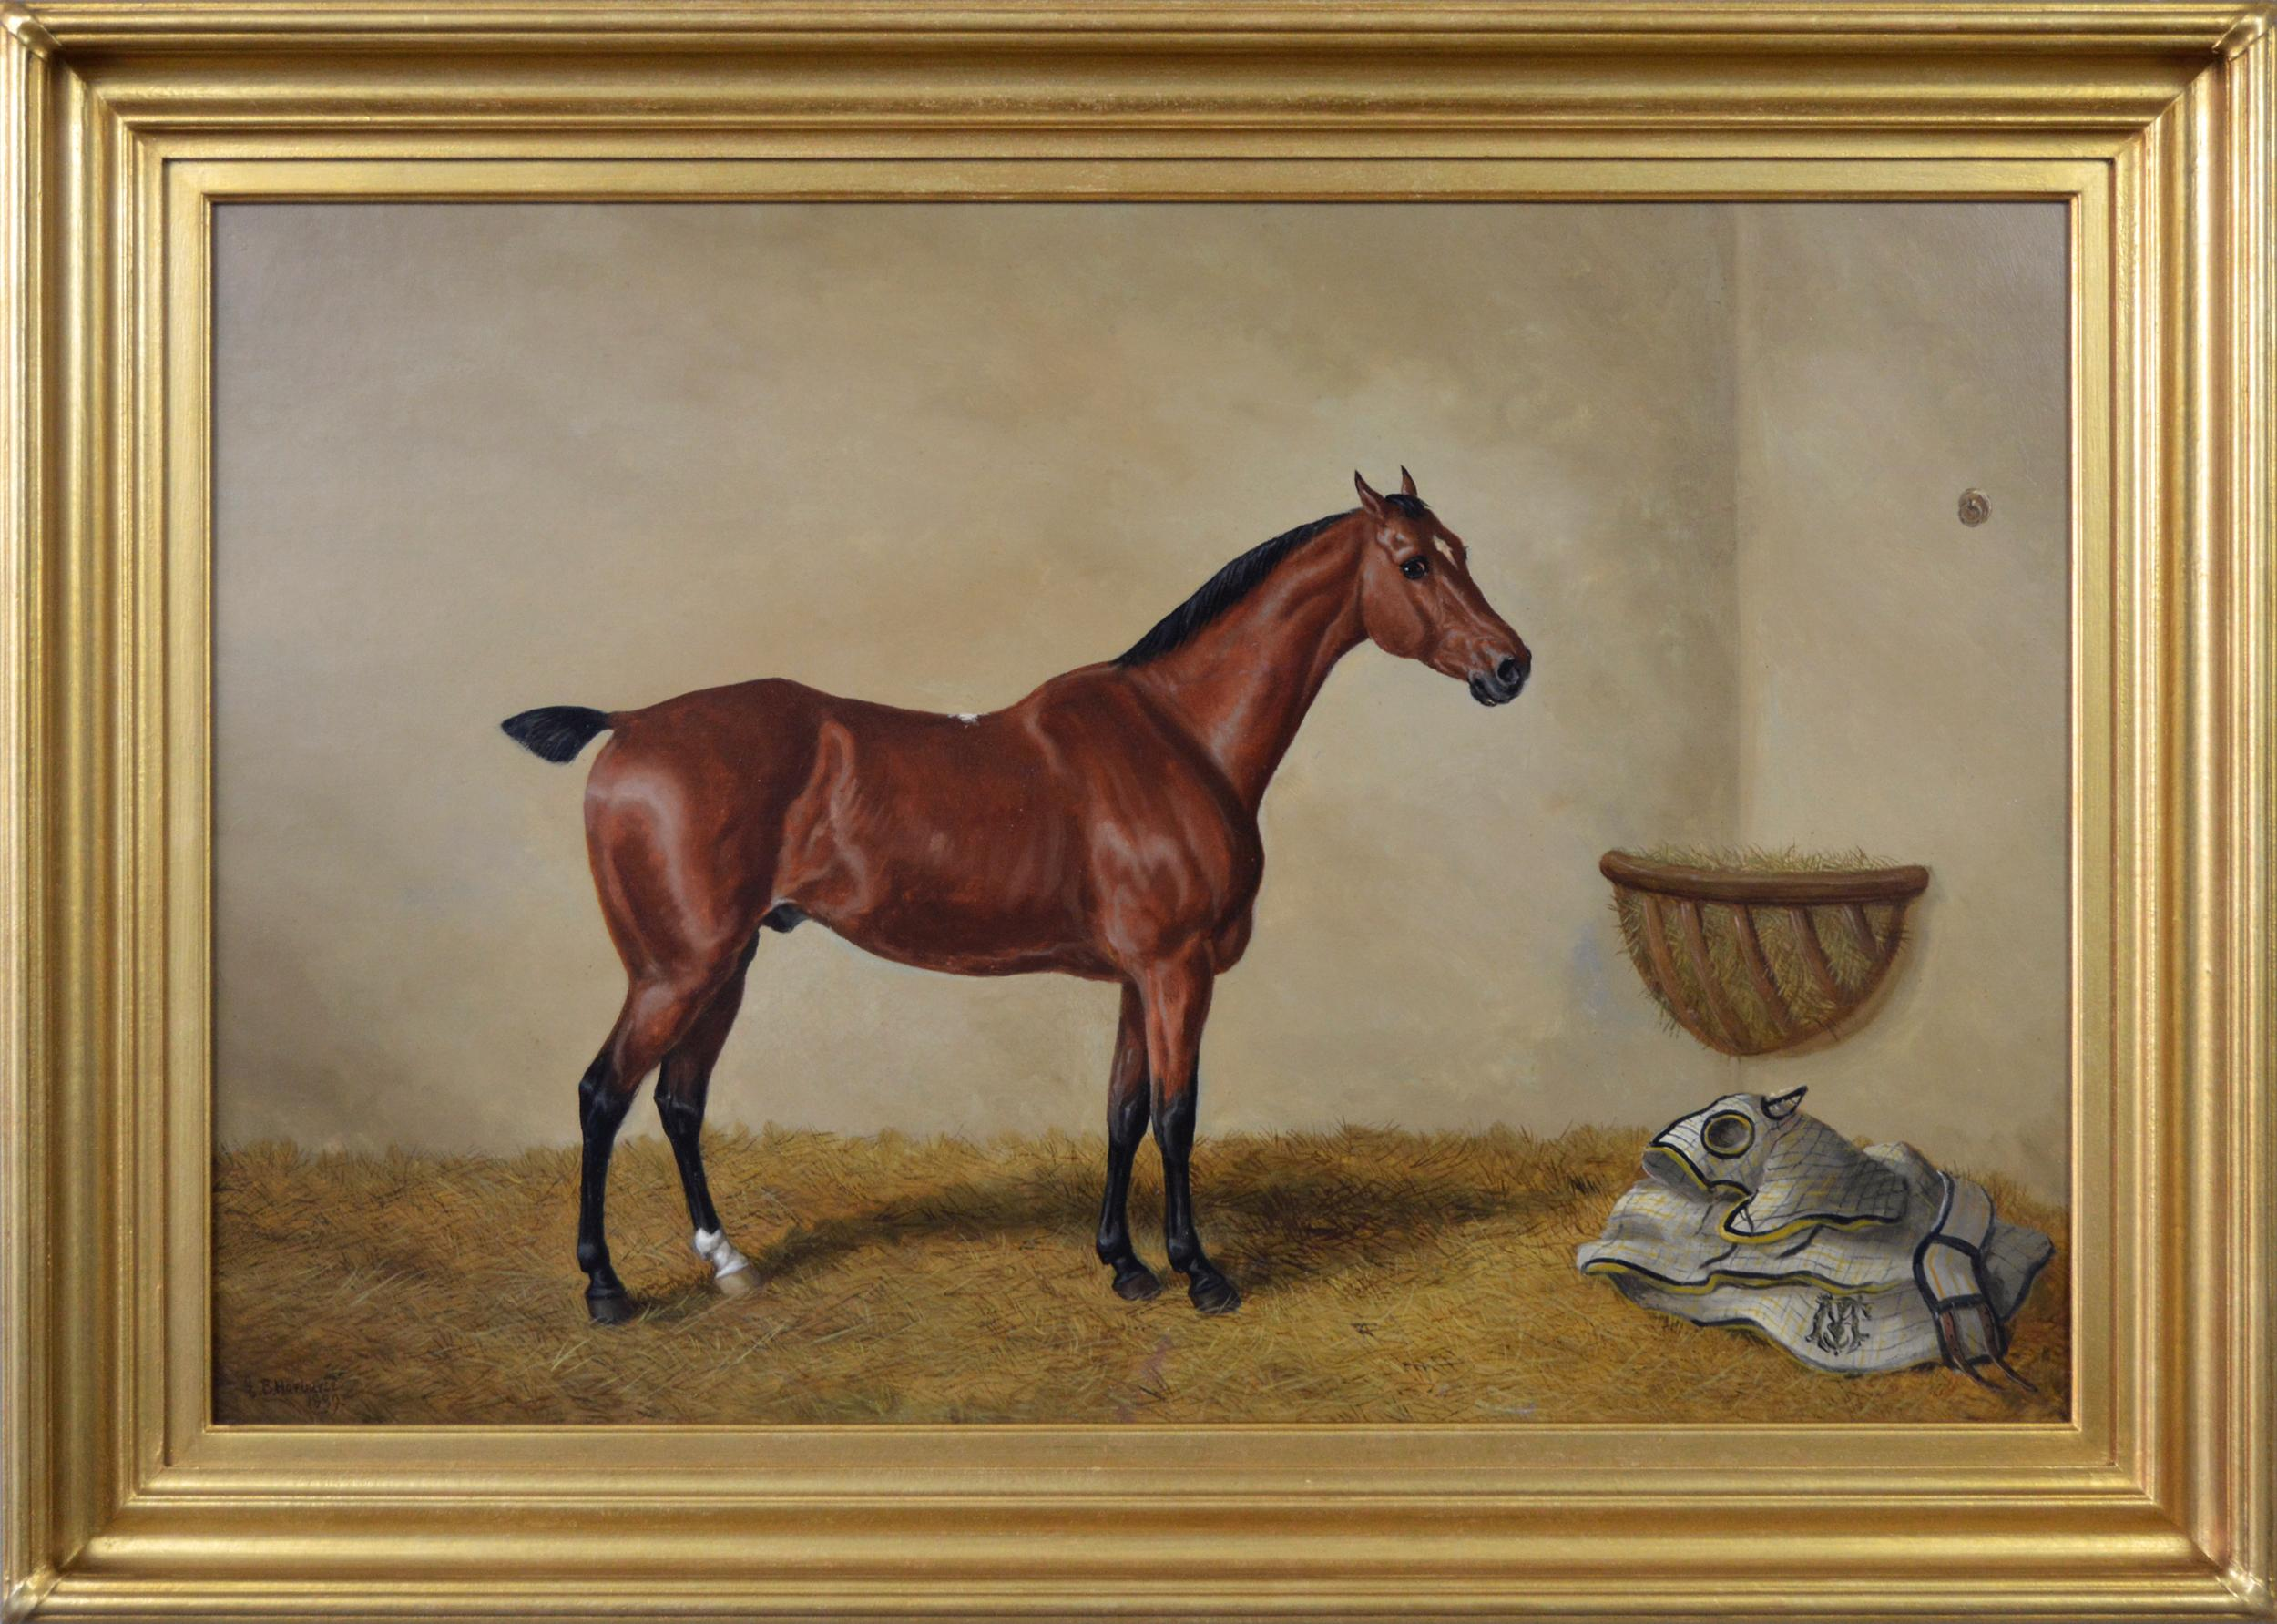 19th Century sporting horse portrait oil painting of a bay hunter